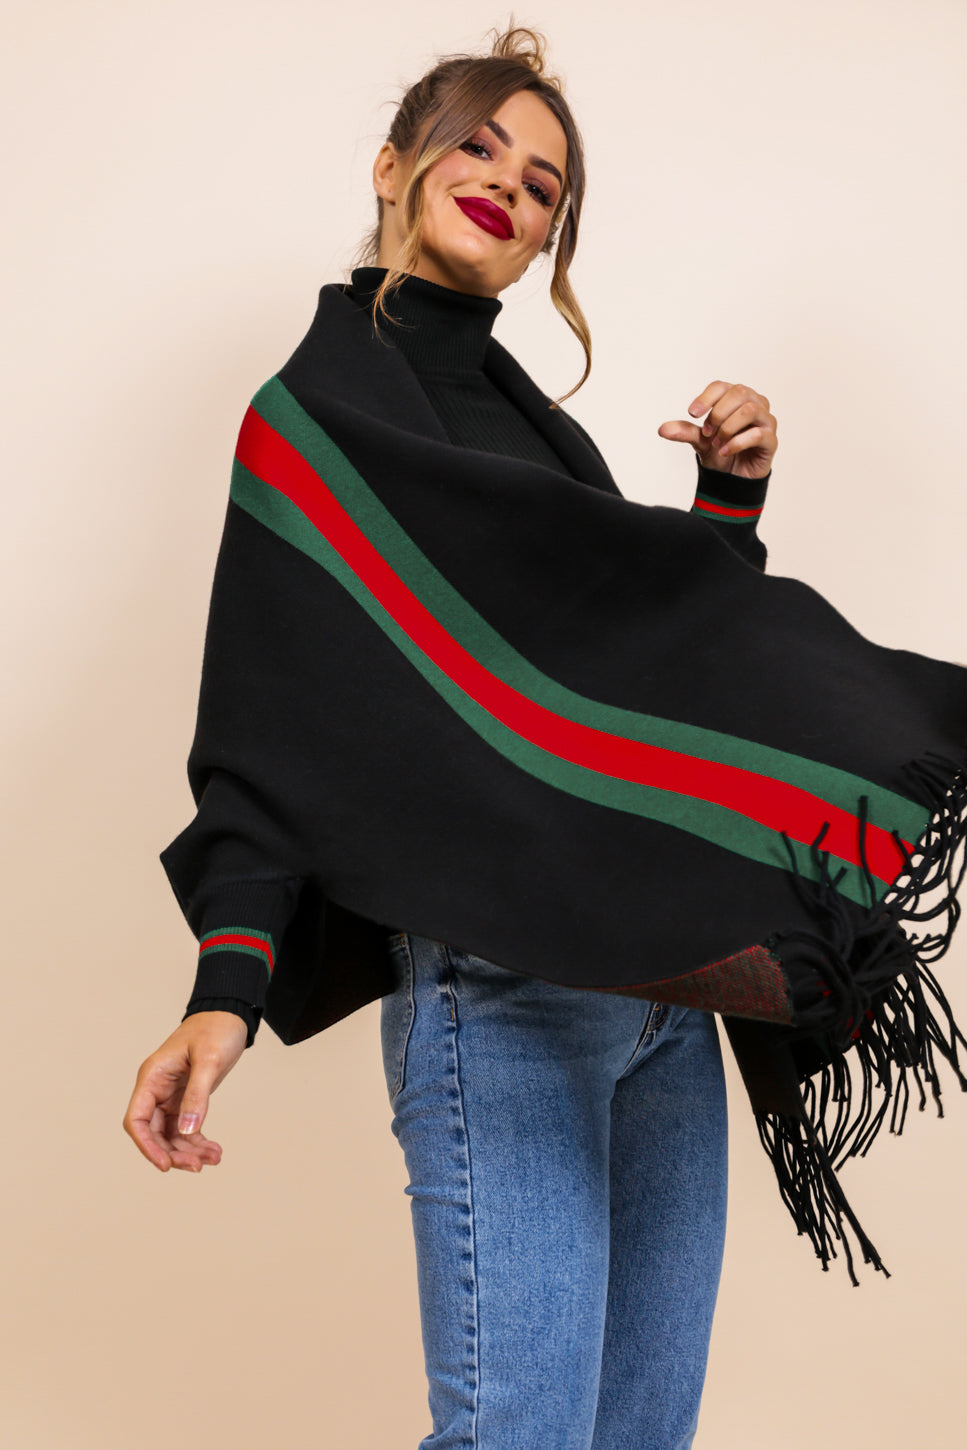 https://cdn.shopify.com/s/files/1/0062/6661/7925/files/product-video-no-chill-scarf-in-black.mp4?5932